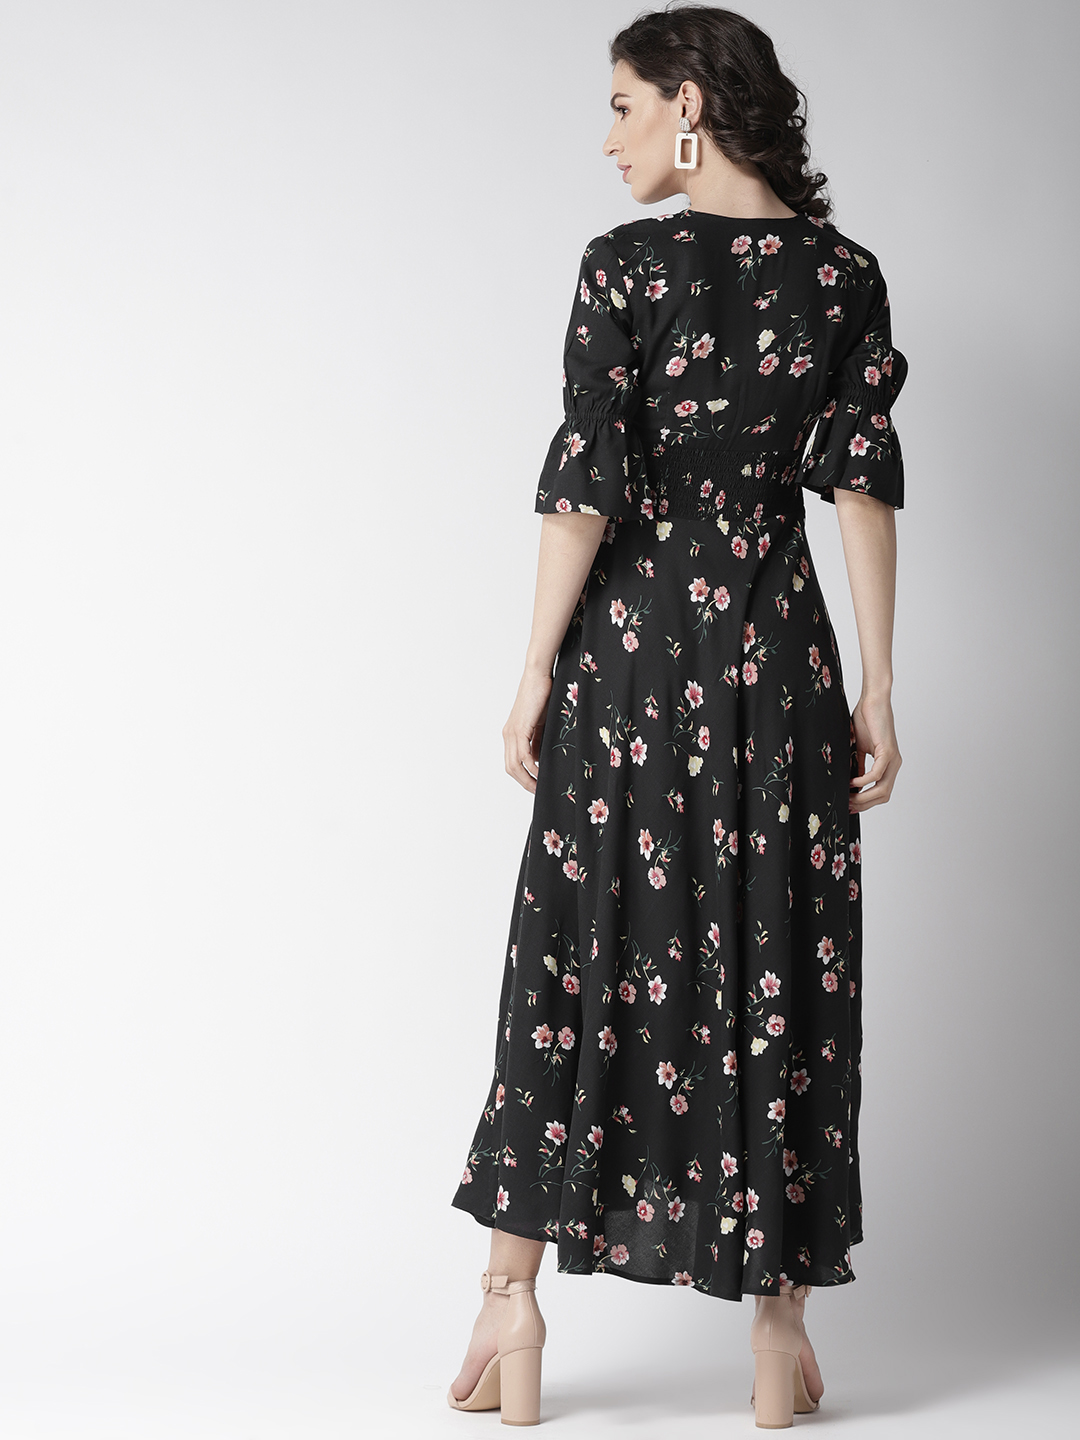 Dresses-Spot On Style Floral Maxi Dress3